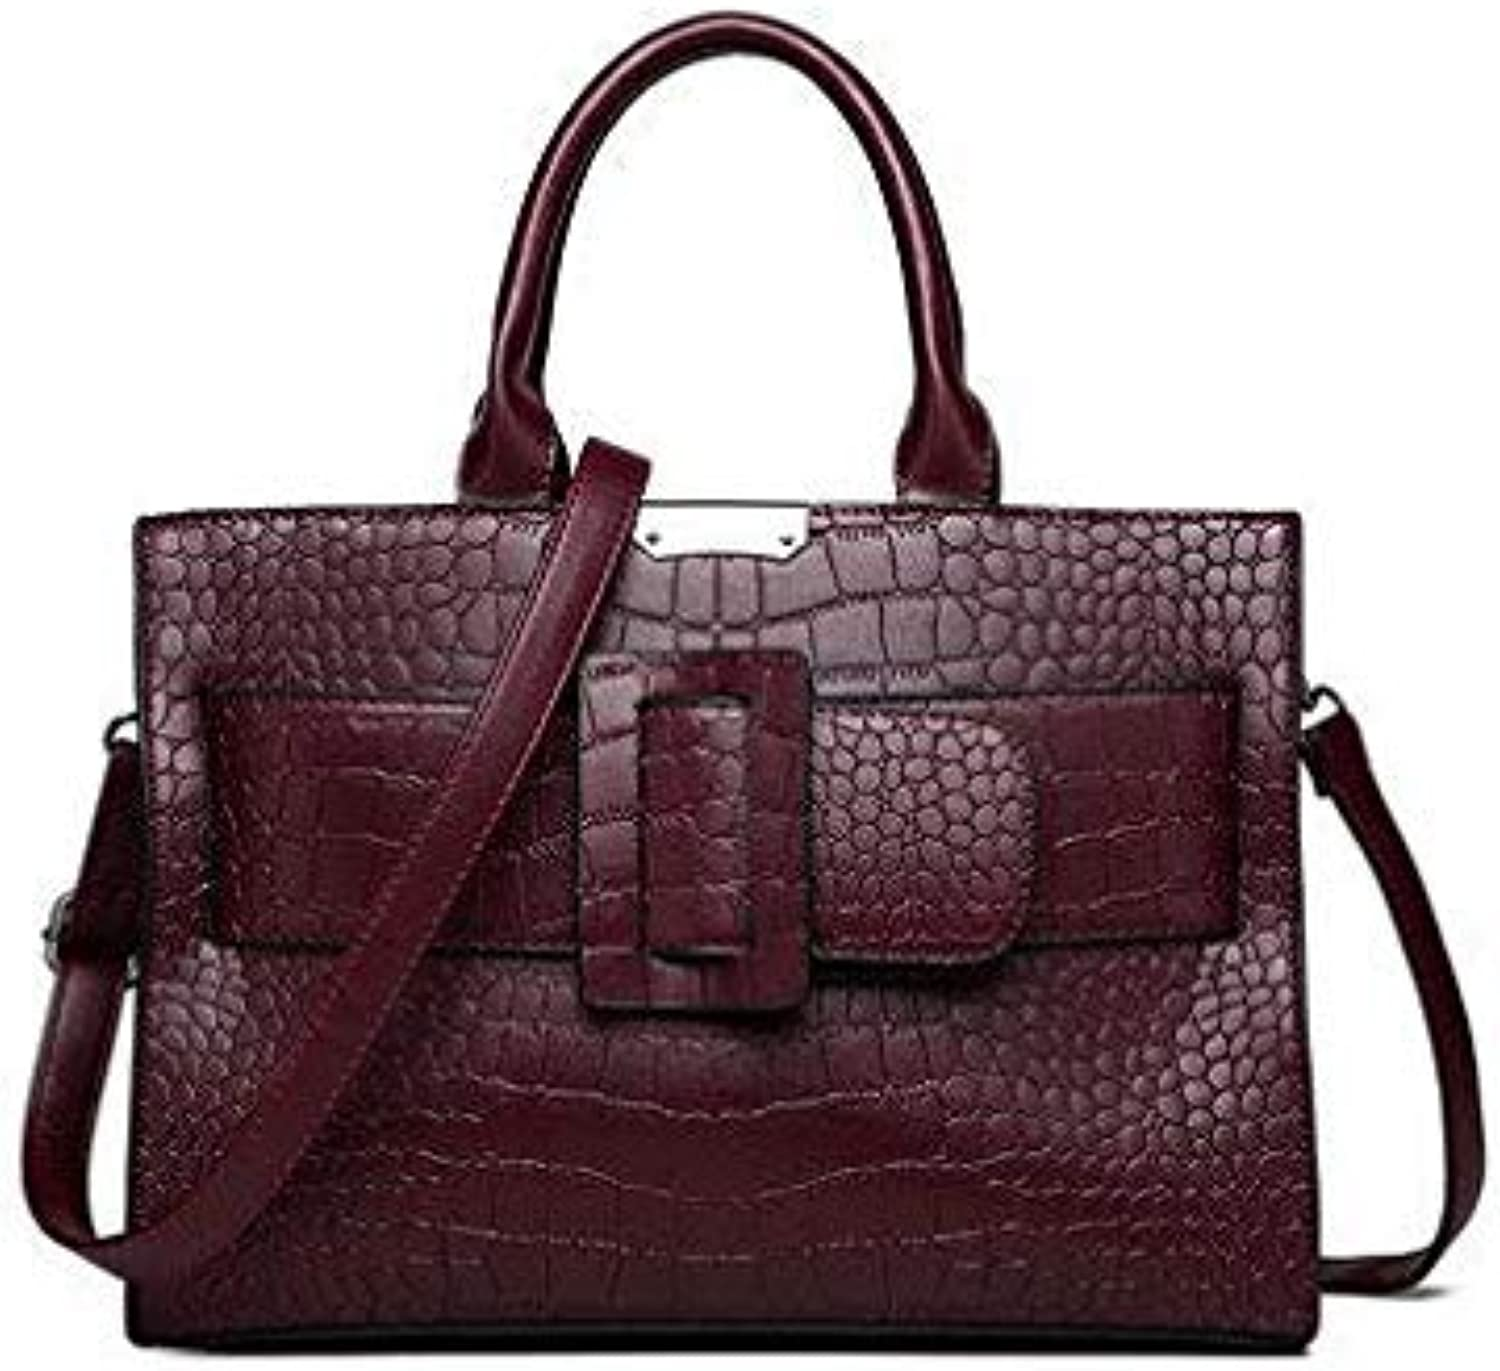 Bloomerang Crocodile Bags Women Handbags Famous Brand Luxury Designer High Quality Pu Tote Bag Ladies Leather Shoulder Hand Bags women color Wine red 32x23cm